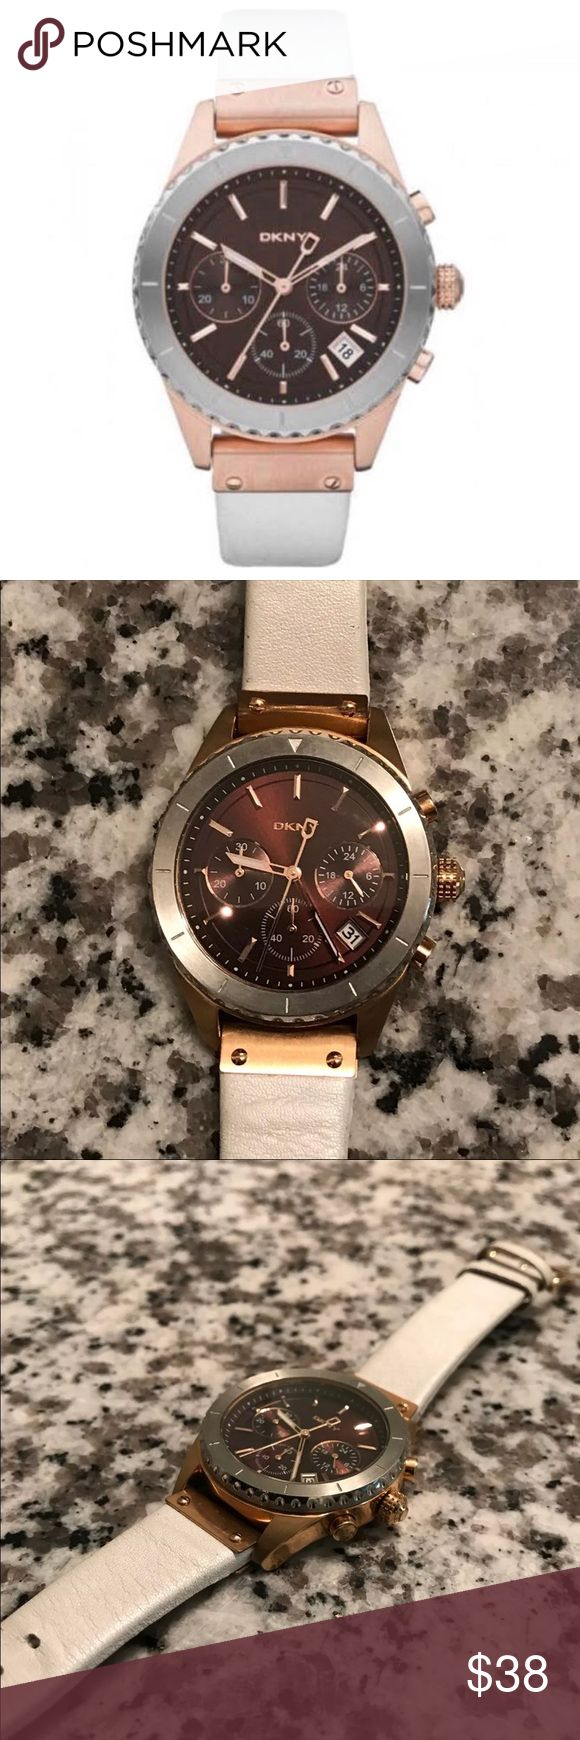 DKNY two tone watch Rose gold and silver watch with deep burgundy metallic  face! Pearlized white genuine leather straps. Needs battery which is the reason for low price ! Gently loved! Dkny Accessories Watches